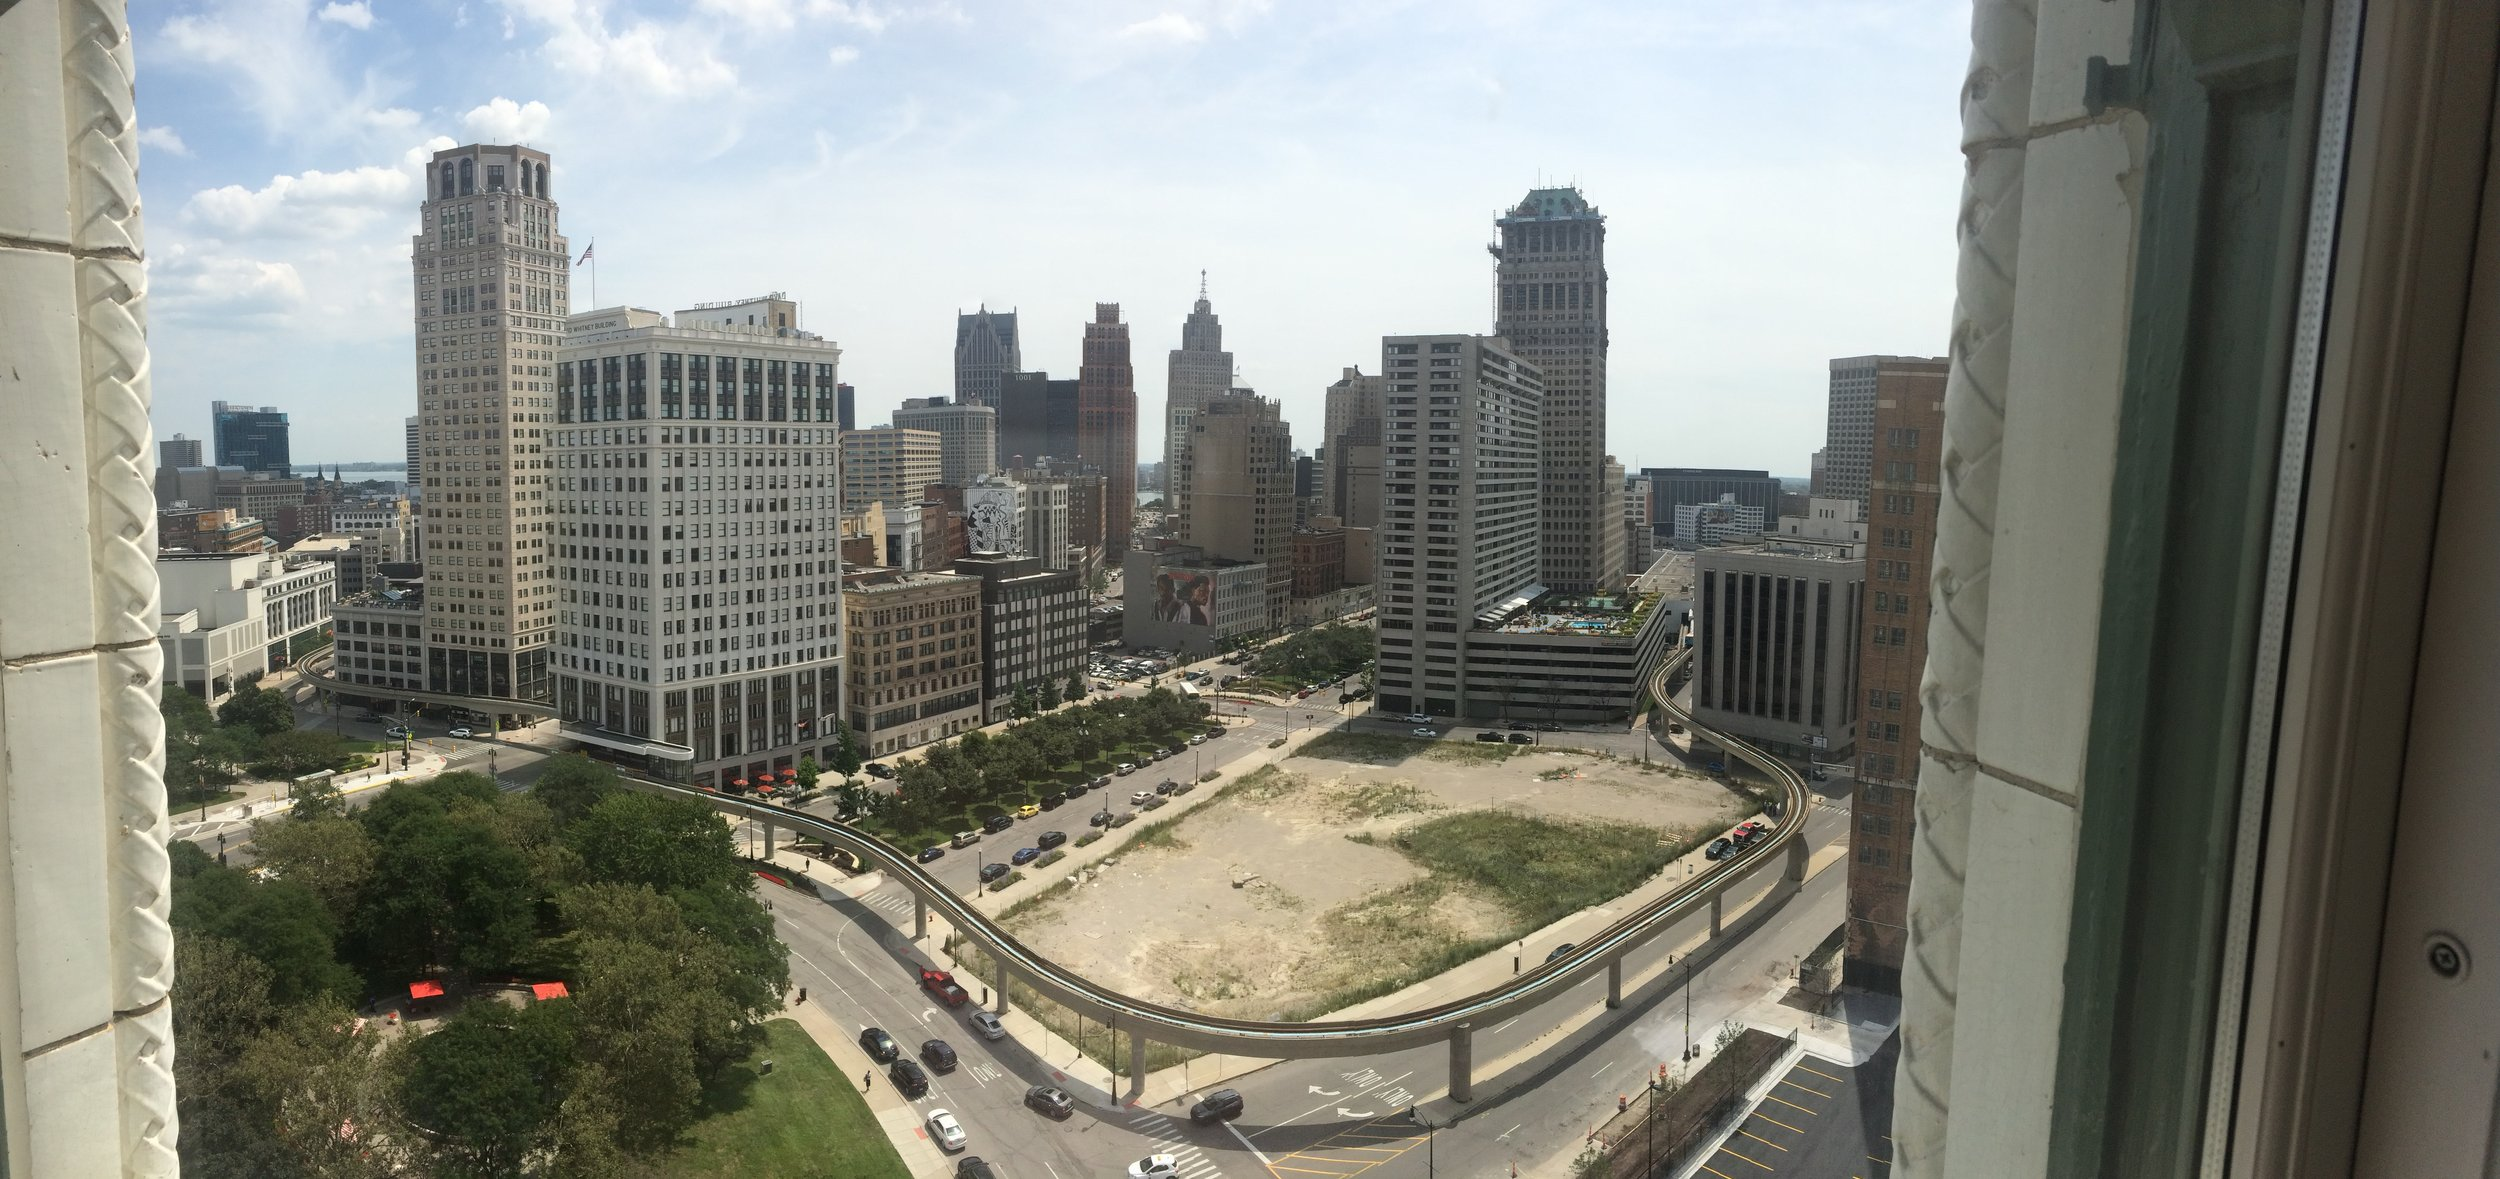 Our view of downtown Detroit from our temporary apartment